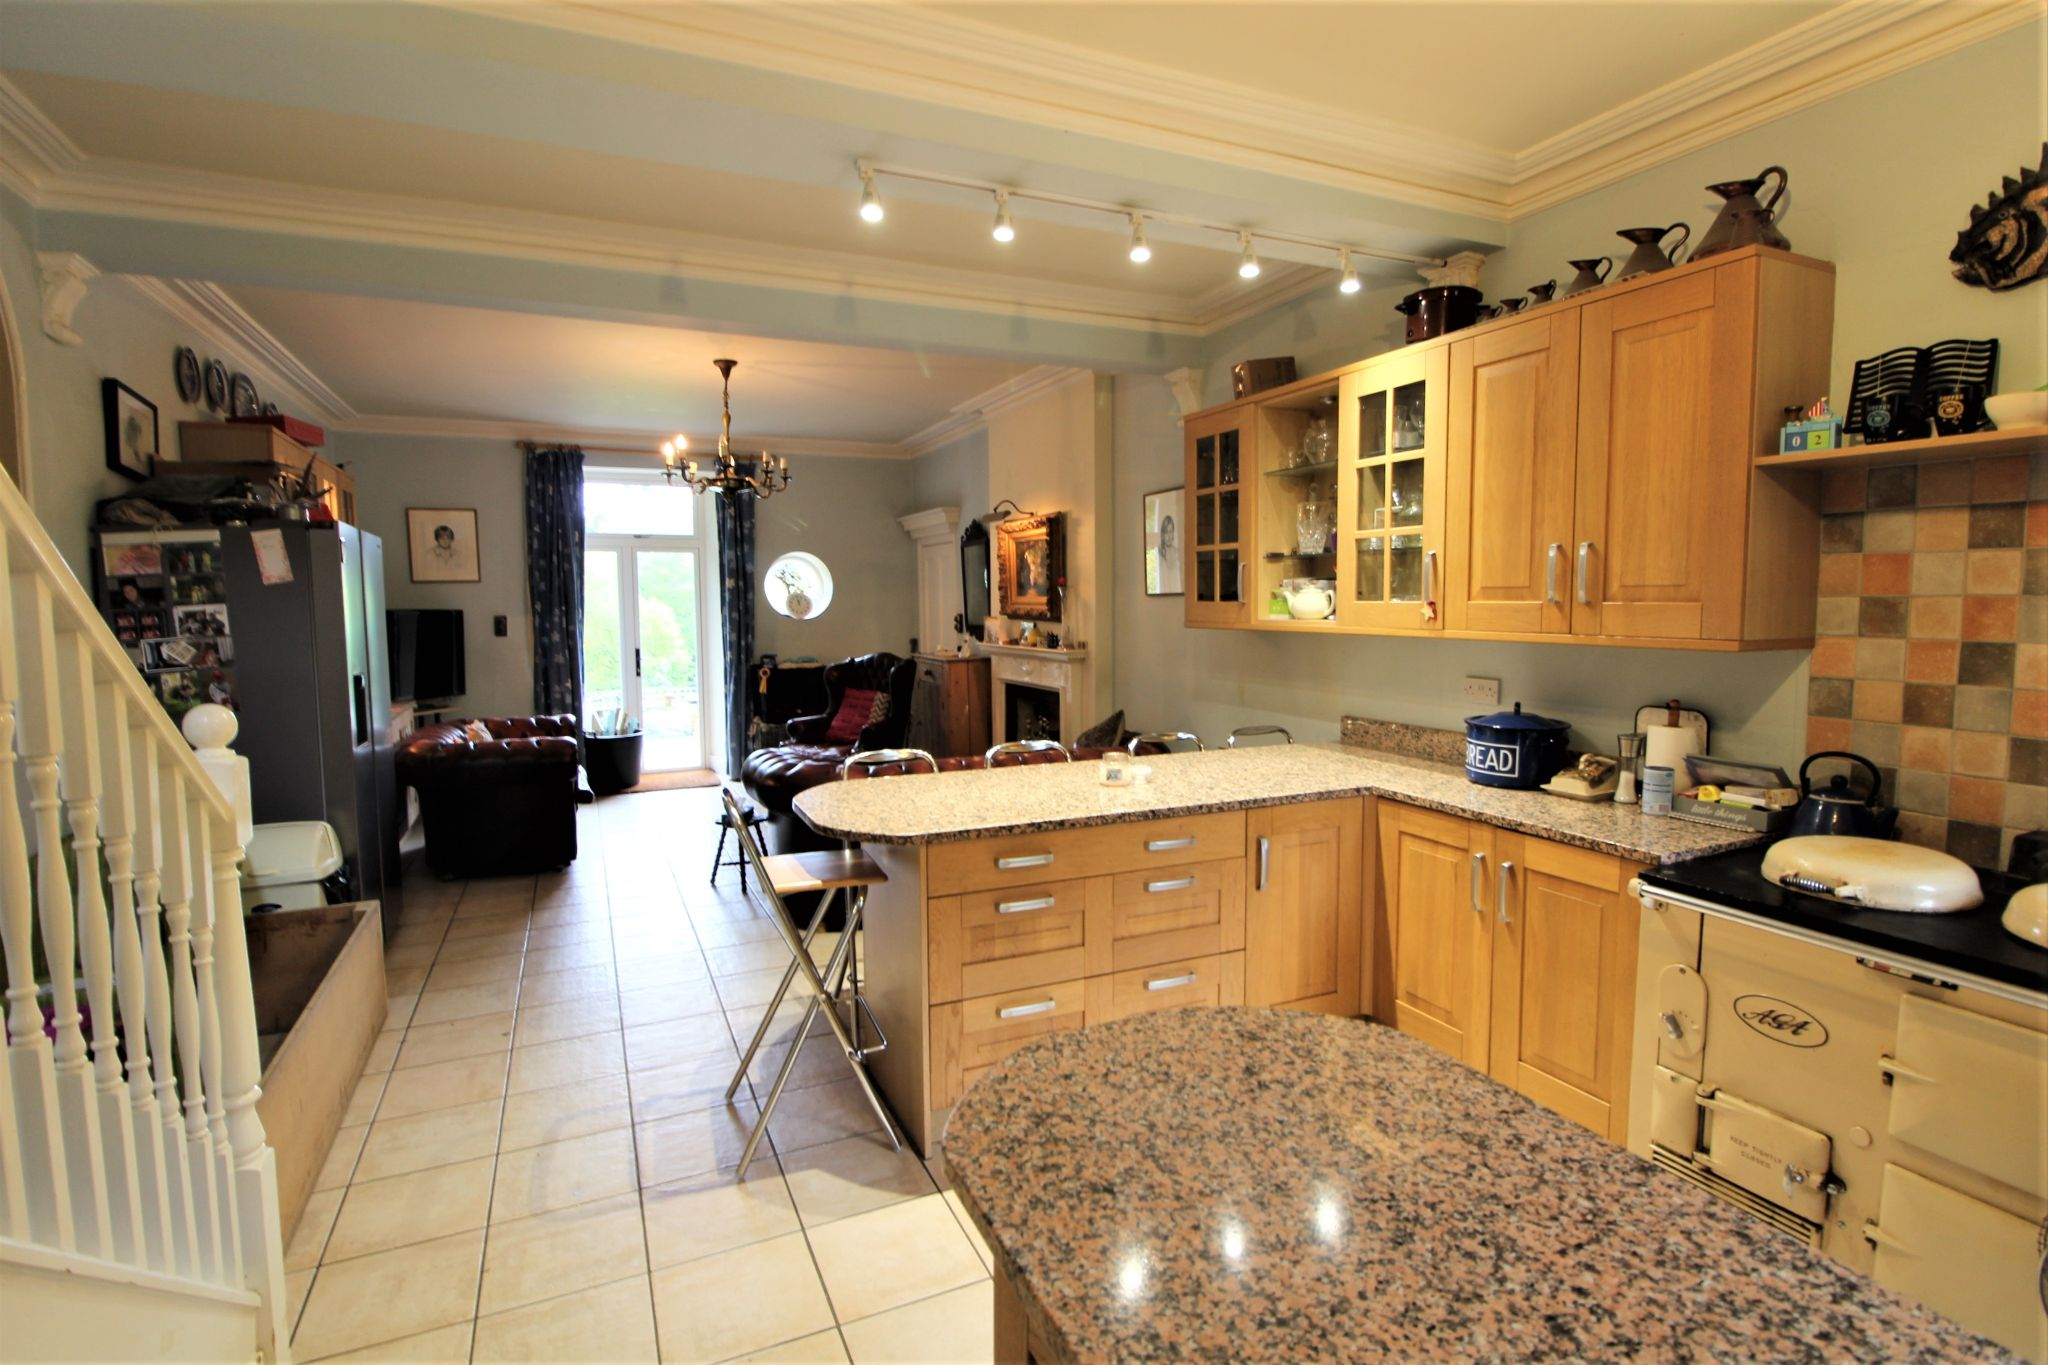 6 bedroom mews house For Sale in Brookmans Park - Photograph 7